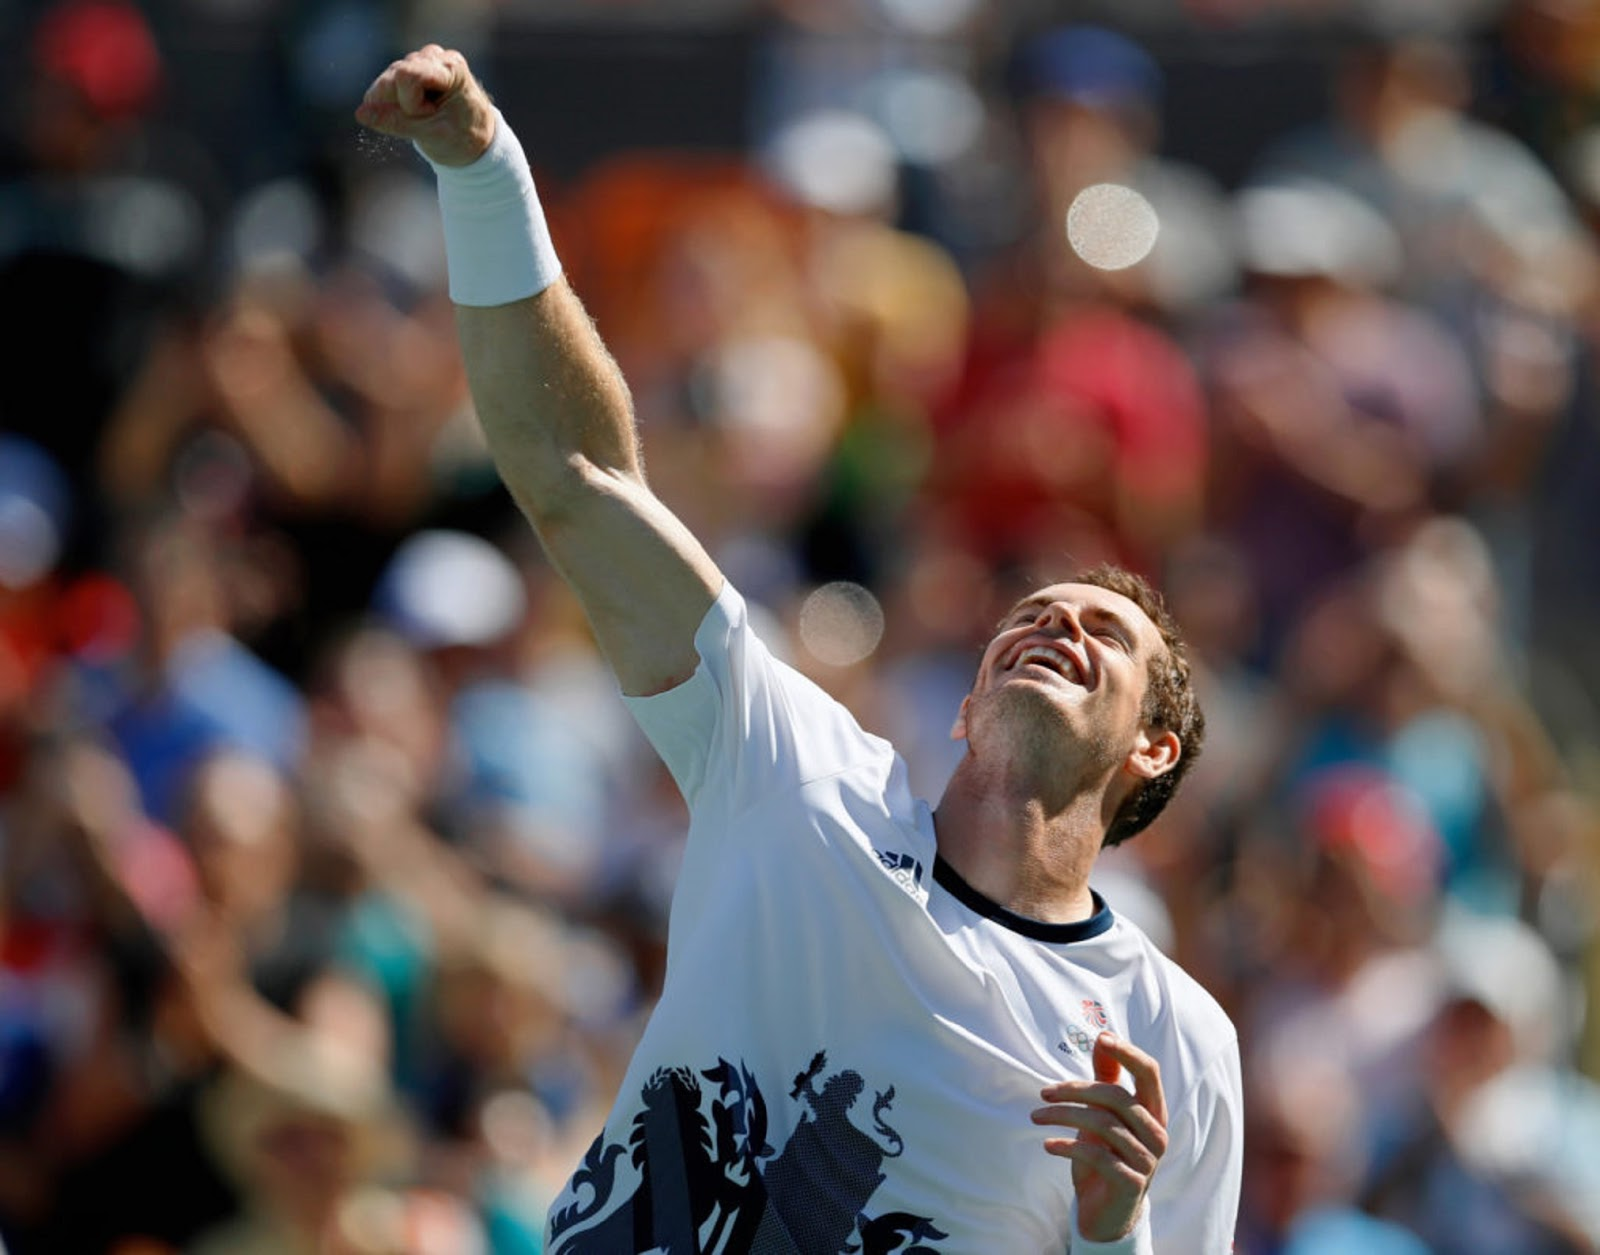 ANDY MURRAY 4